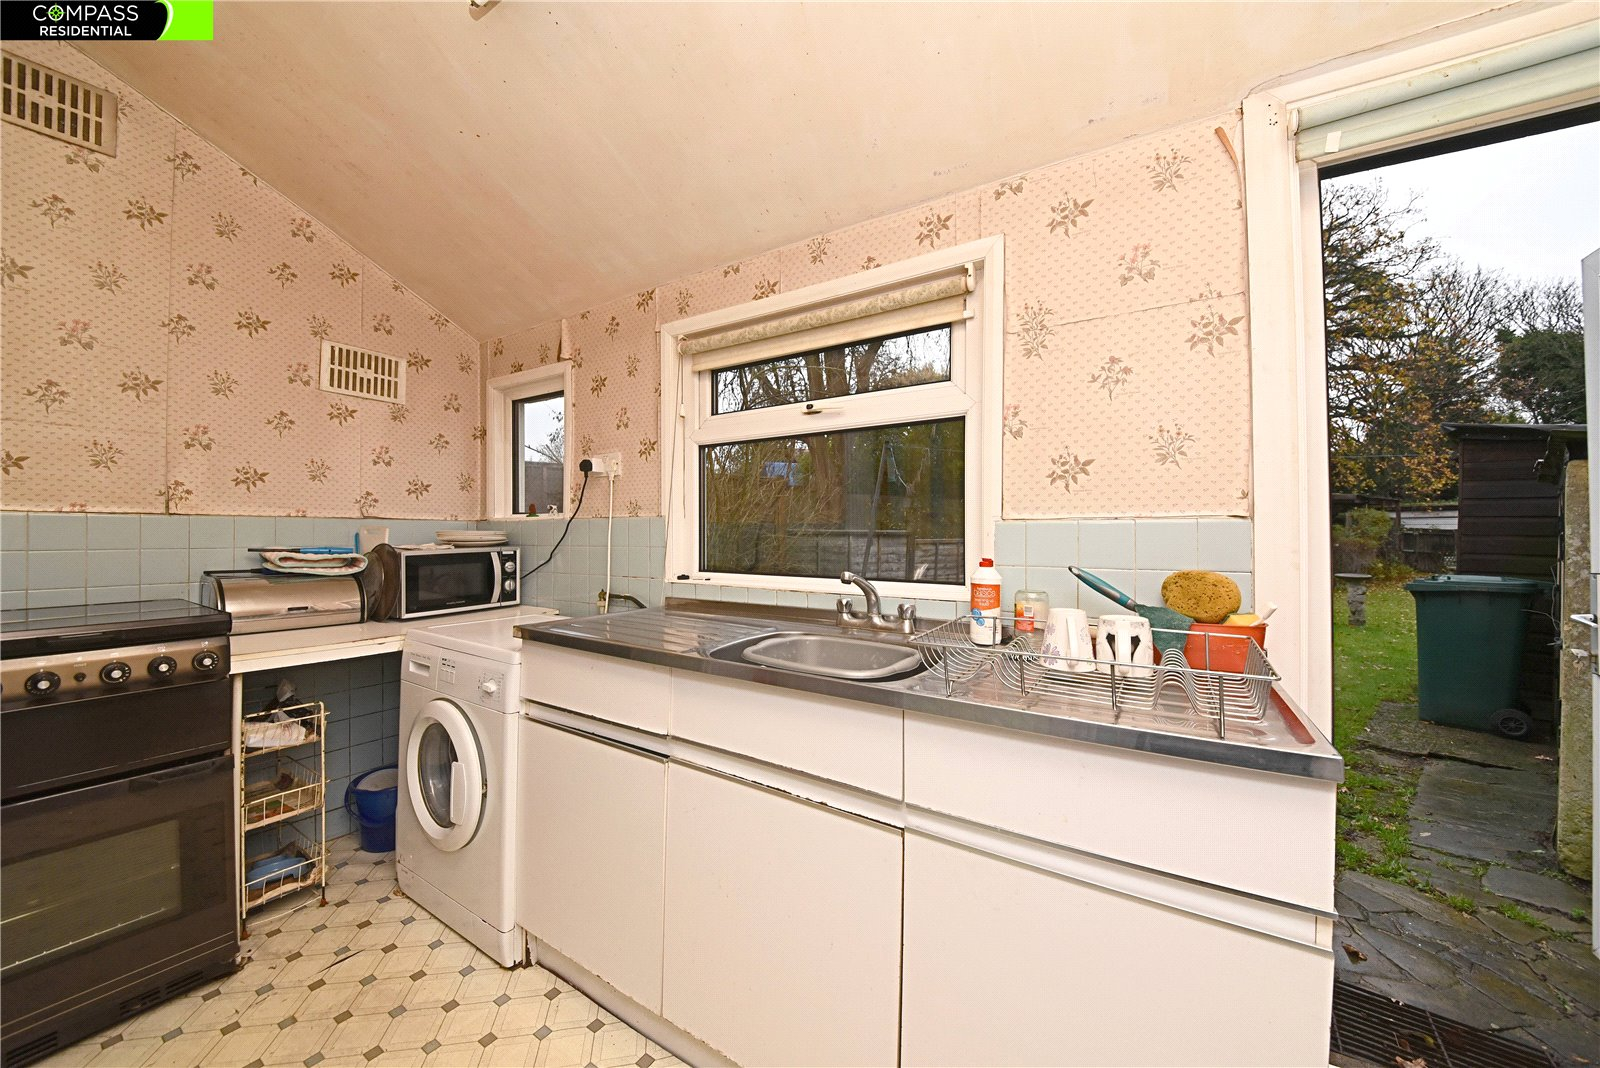 3 bed house for sale in Whetstone, N20 9PT  - Property Image 6